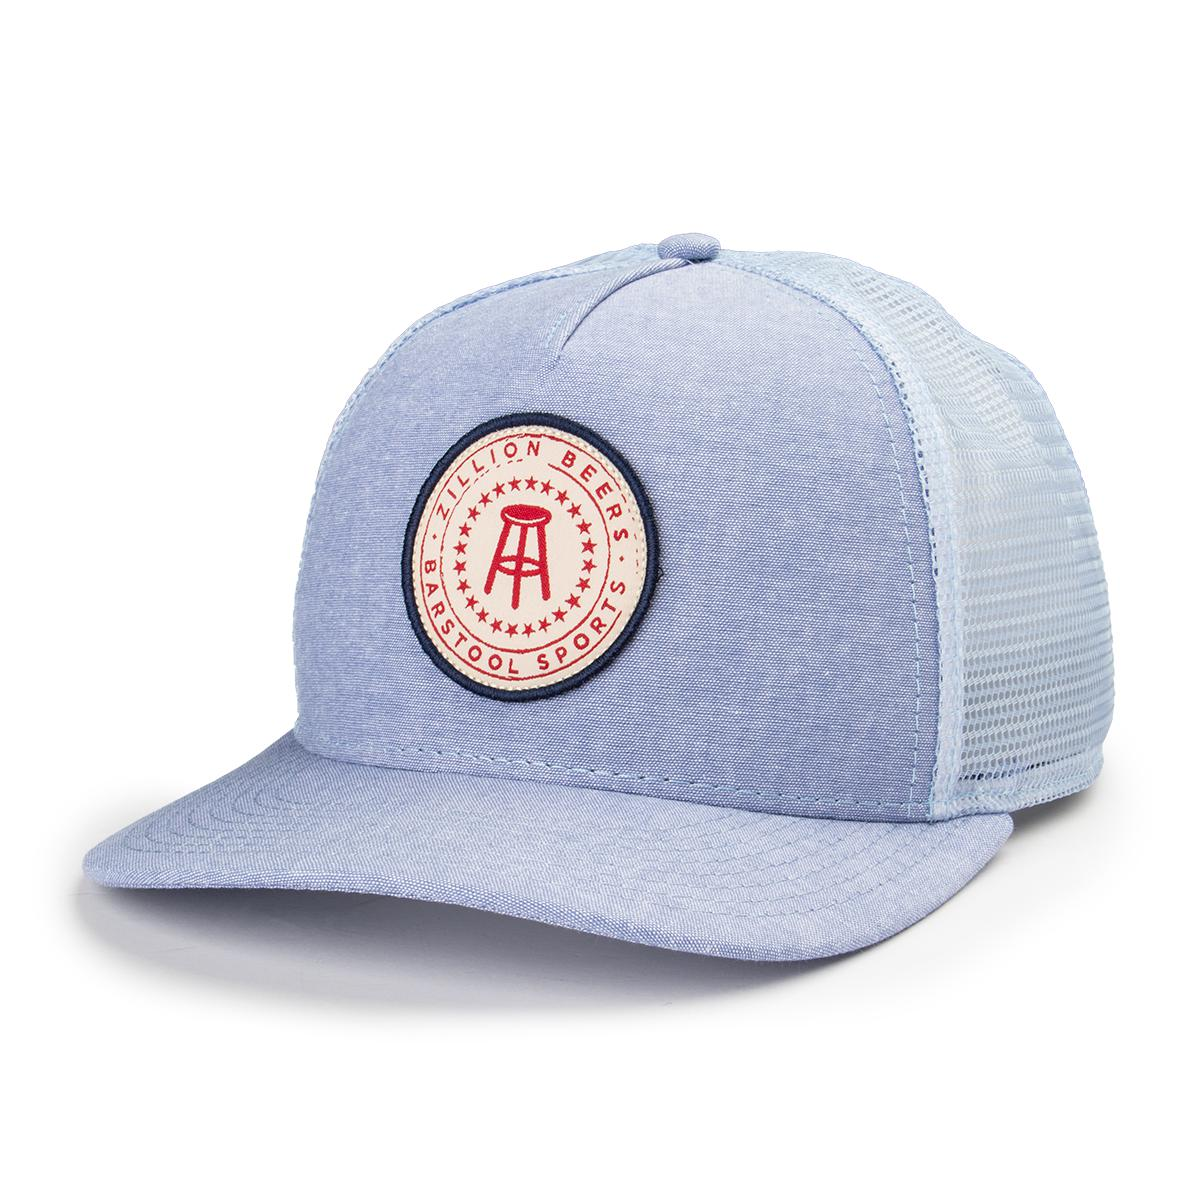 Zillion Beers Mesh Patch Hat